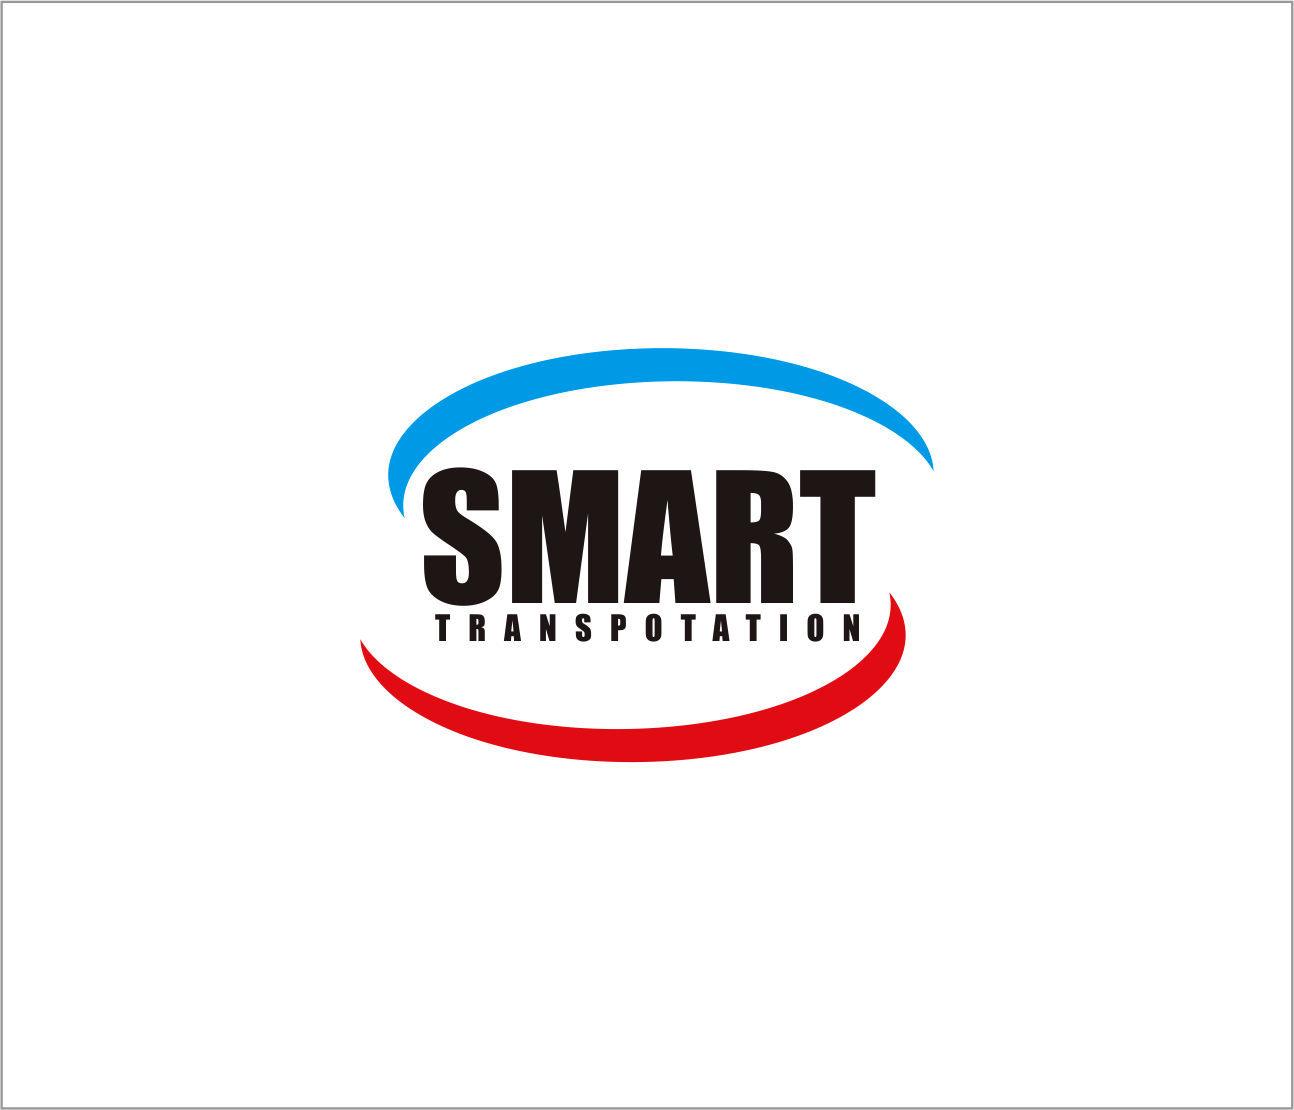 Logo Design by Armada Jamaluddin - Entry No. 65 in the Logo Design Contest Imaginative Logo Design for Smart Transportation.